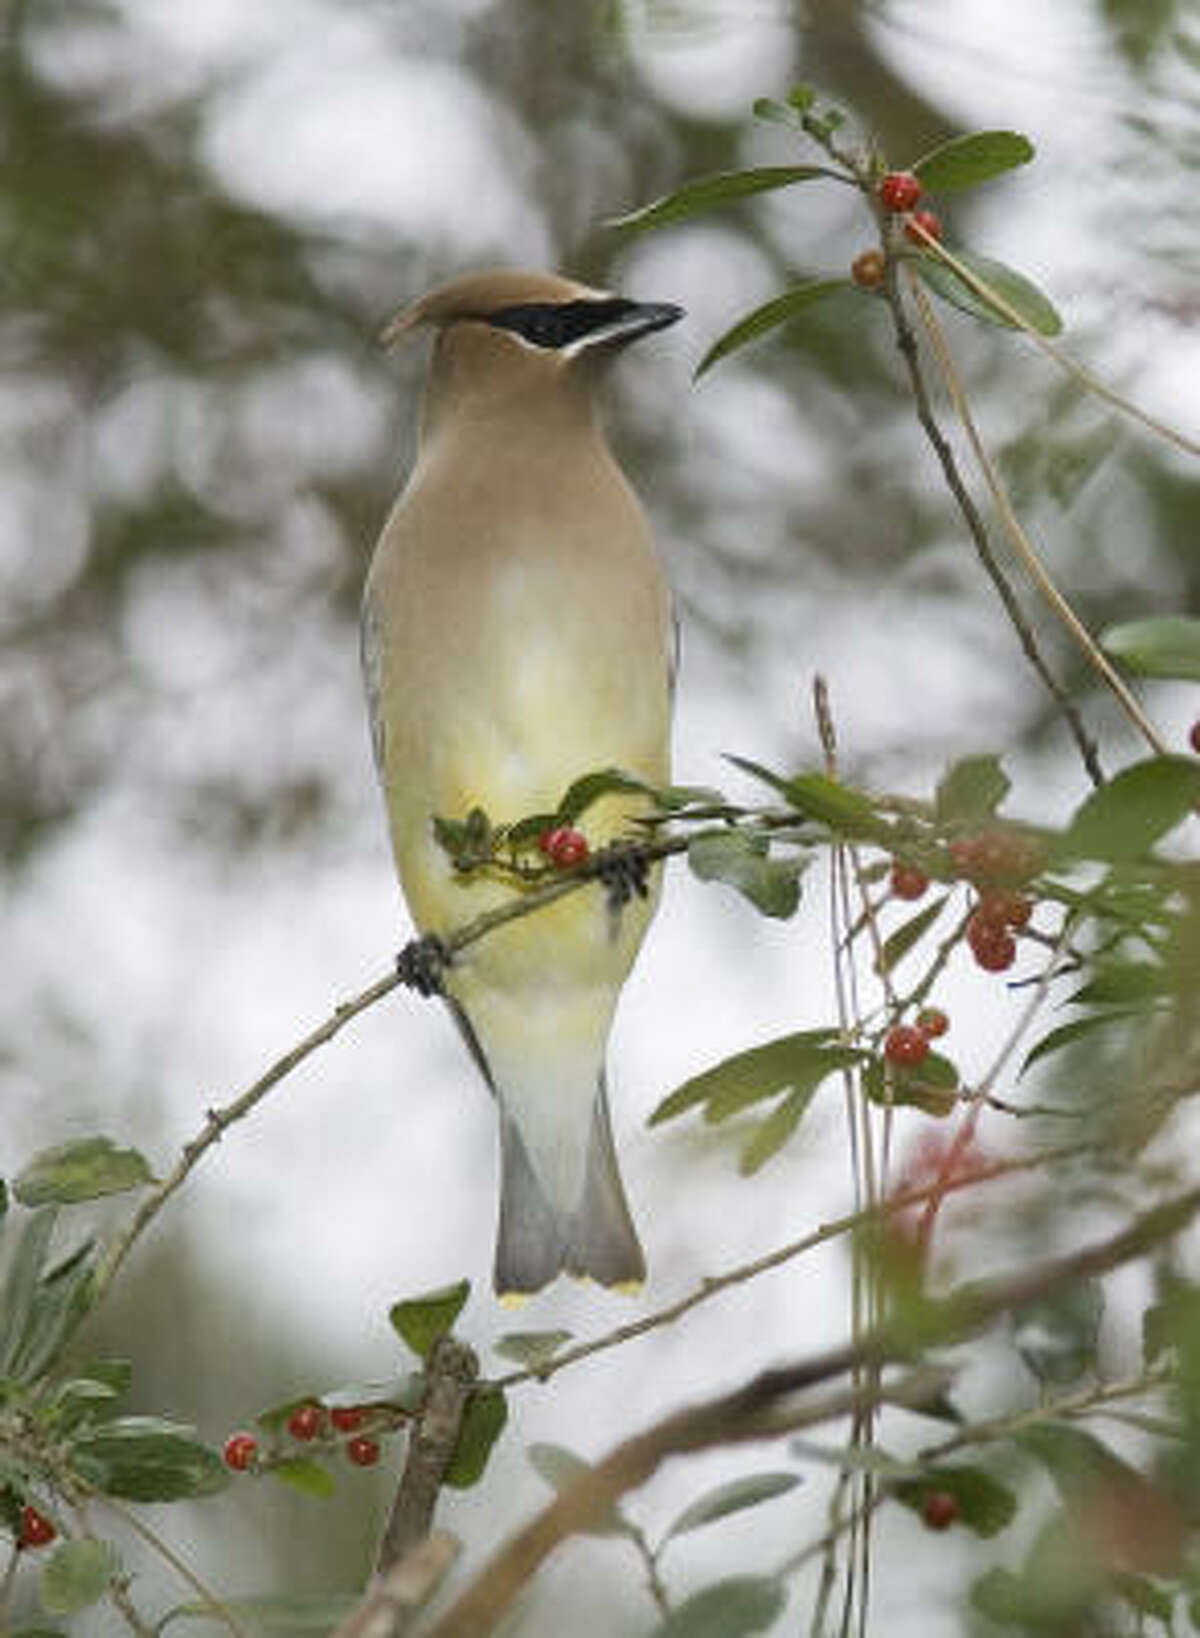 Cedar waxwings grace us with their presence in the winter and feed on our berries.